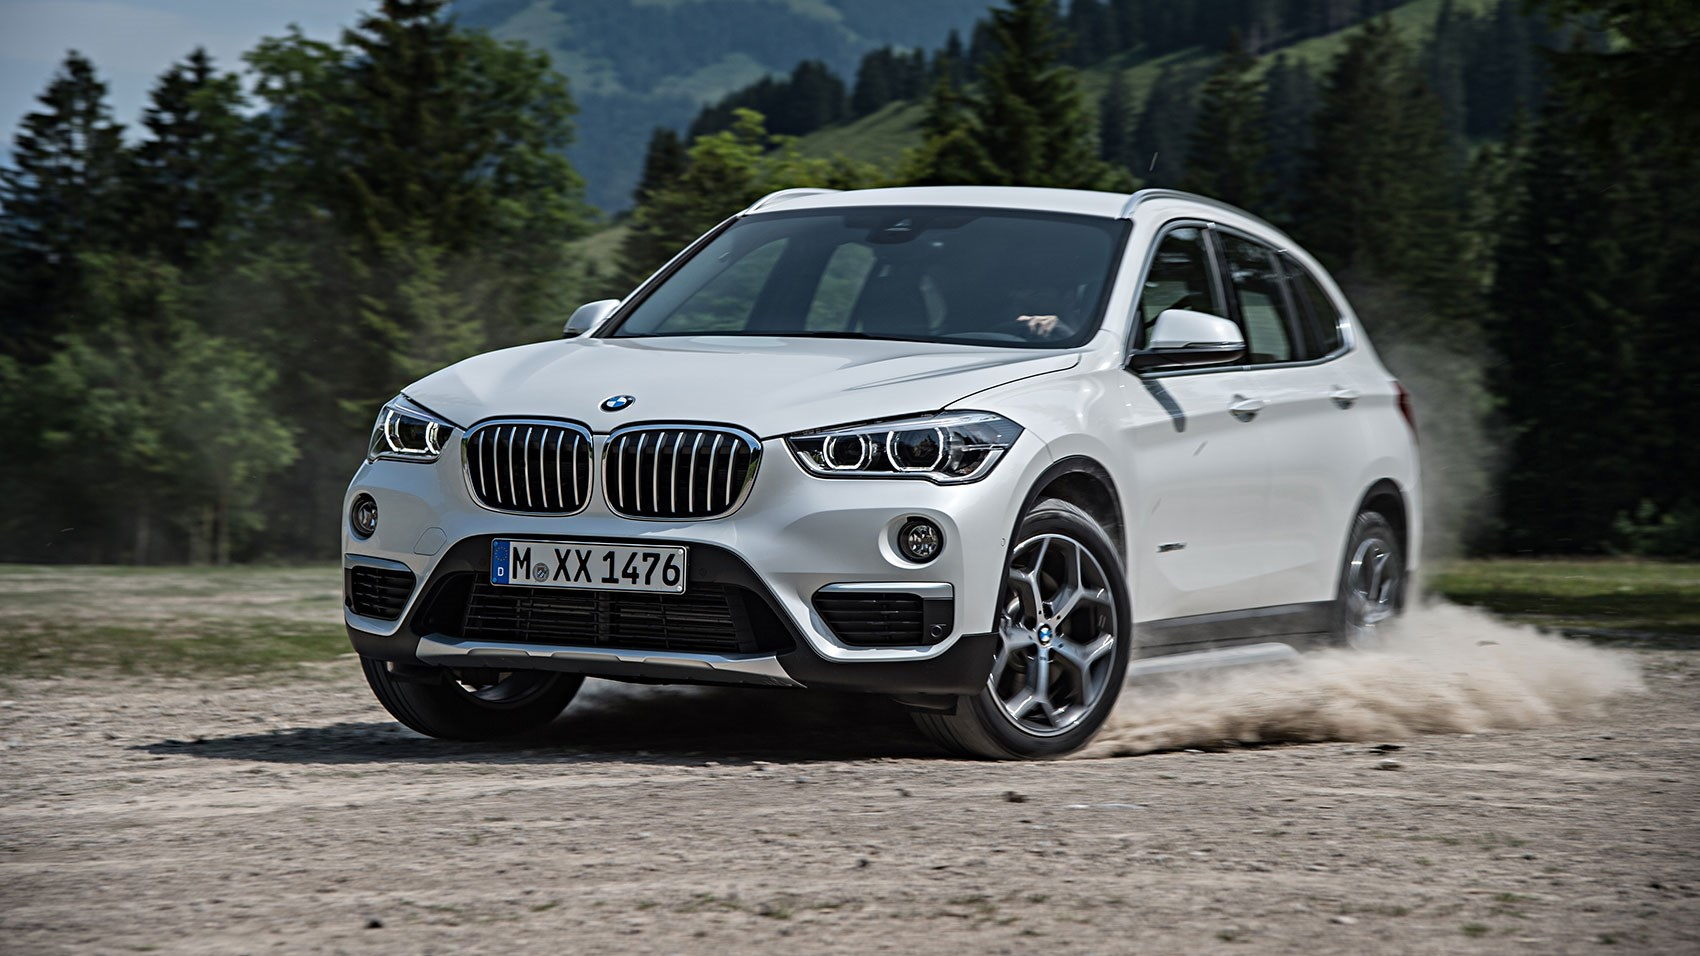 New bmw car finally he chooses bmw over his favorite scorpio car -  Bmw X1s Are Likely To See Cars With The M Sport Suspension Package Sit A Bit Lower